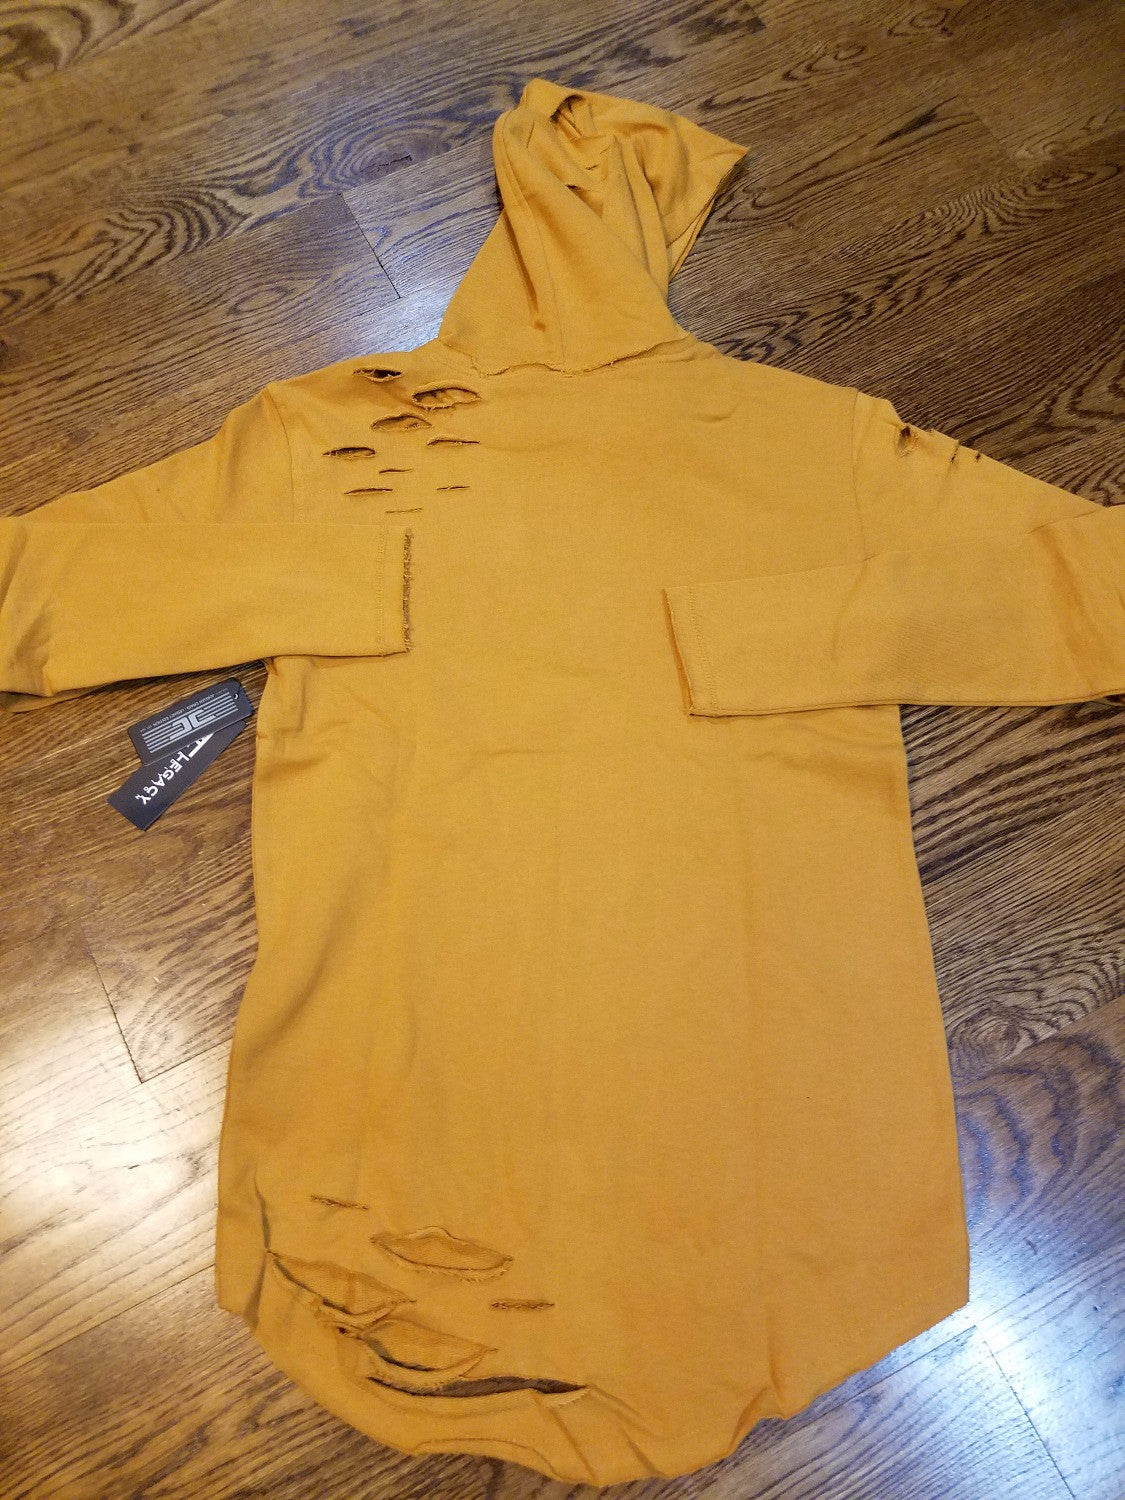 WHEAT LS RIPPED HOODY 8264H - cosign1975